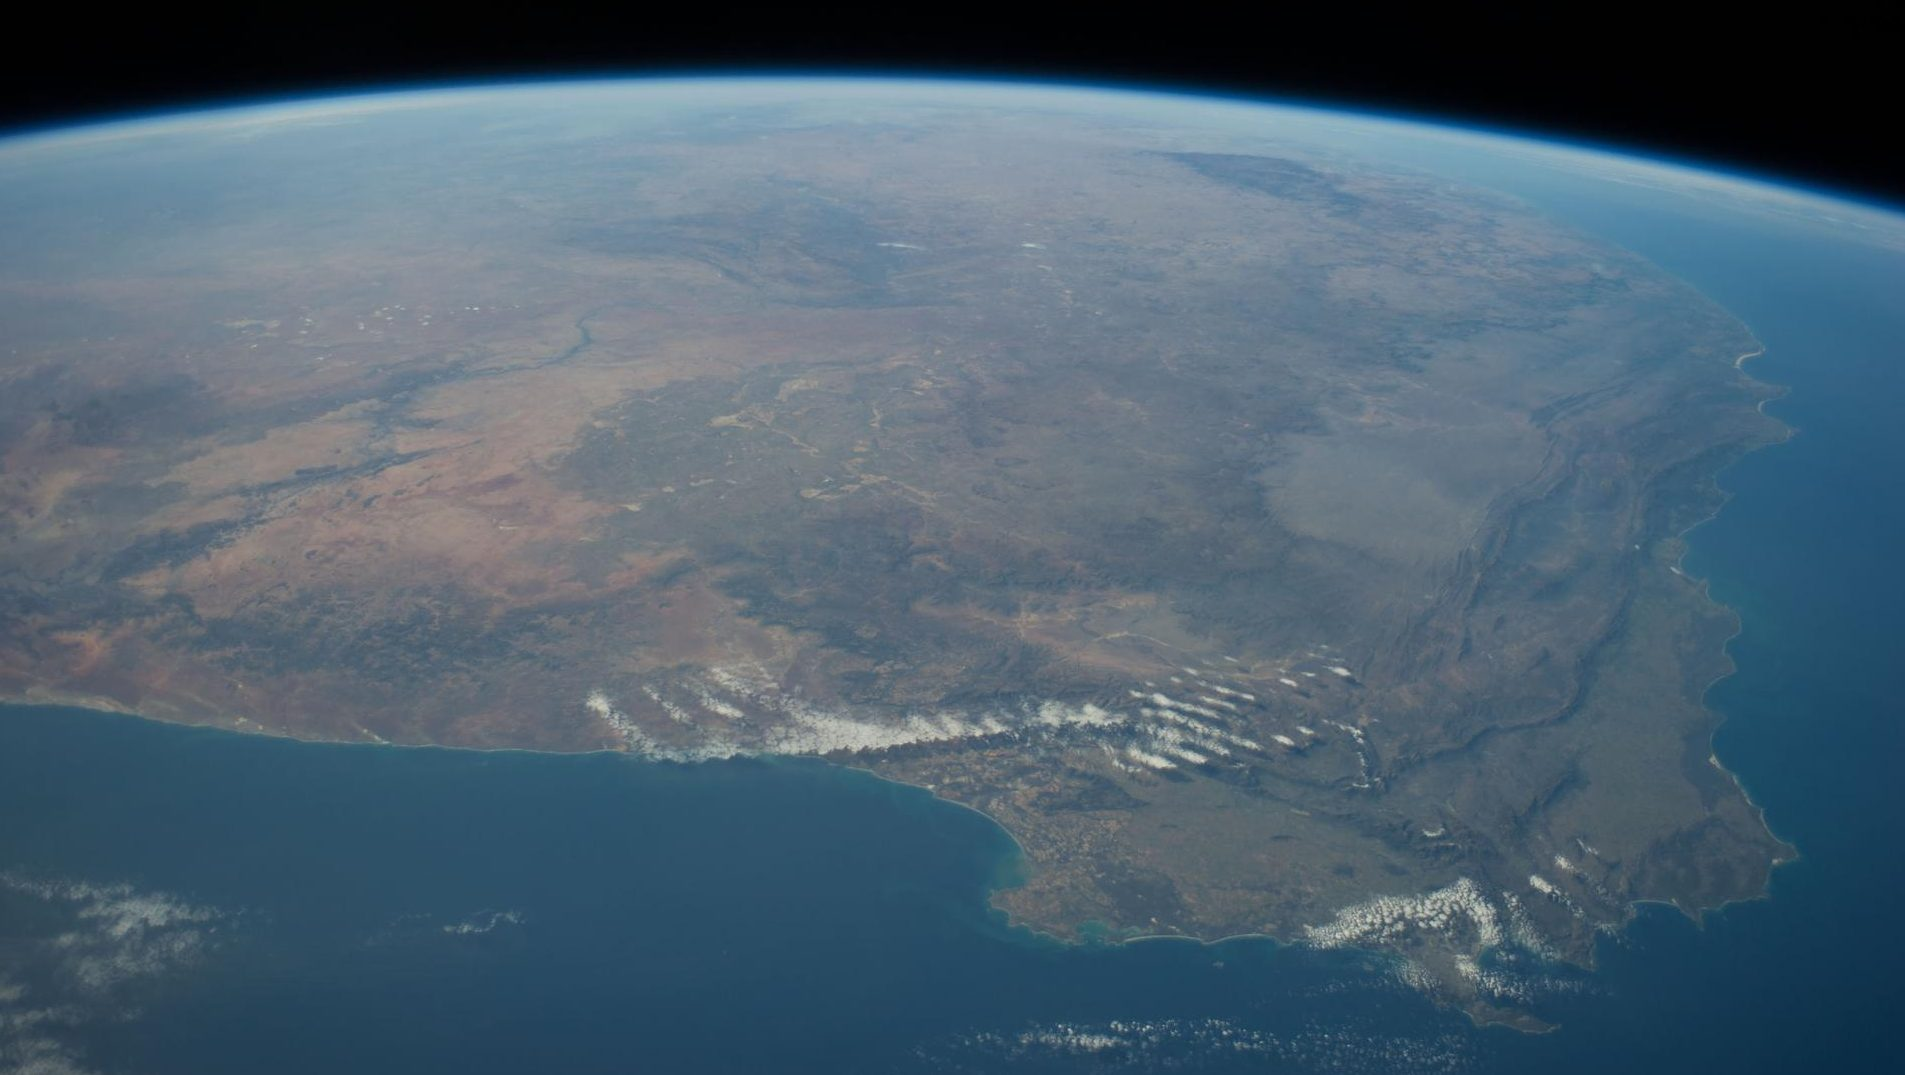 A view of South Africa from the International Space Station.